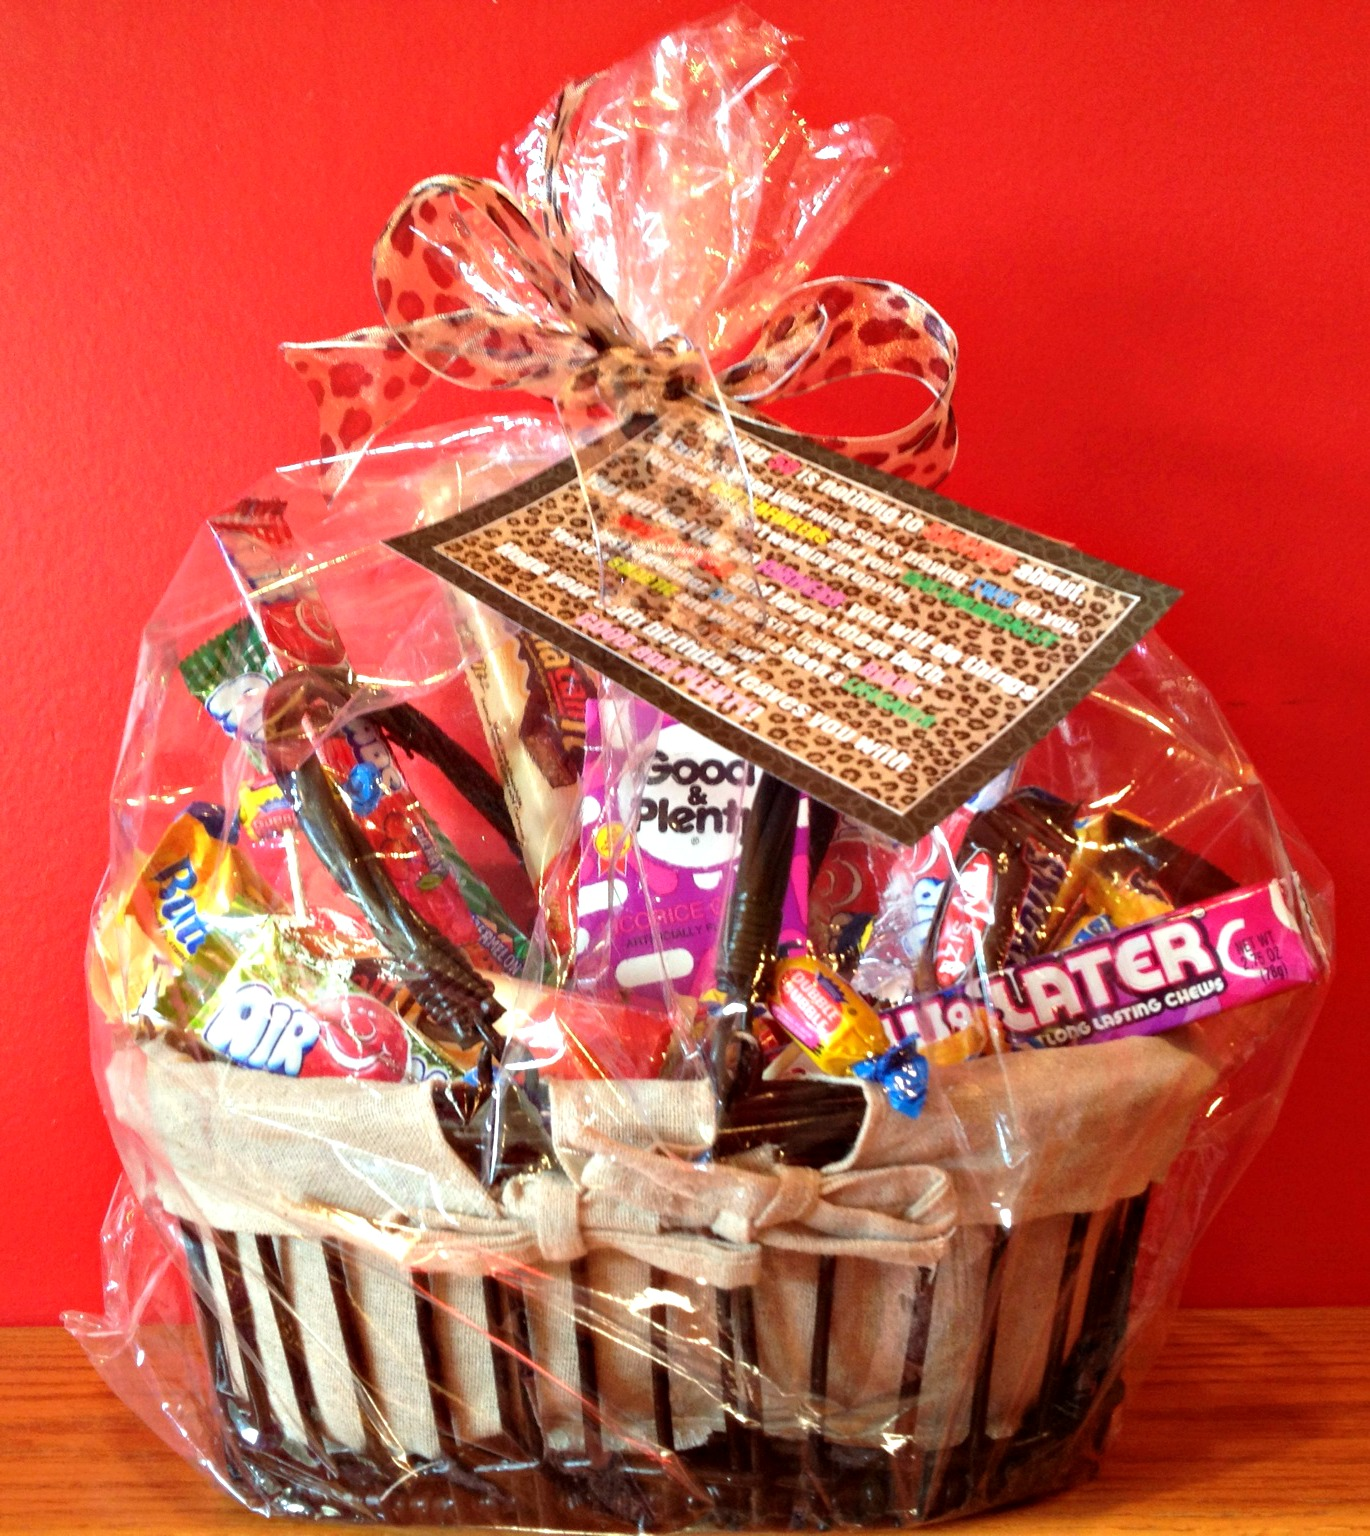 African Desserts: 50th Birthday Candy Basket And Poem